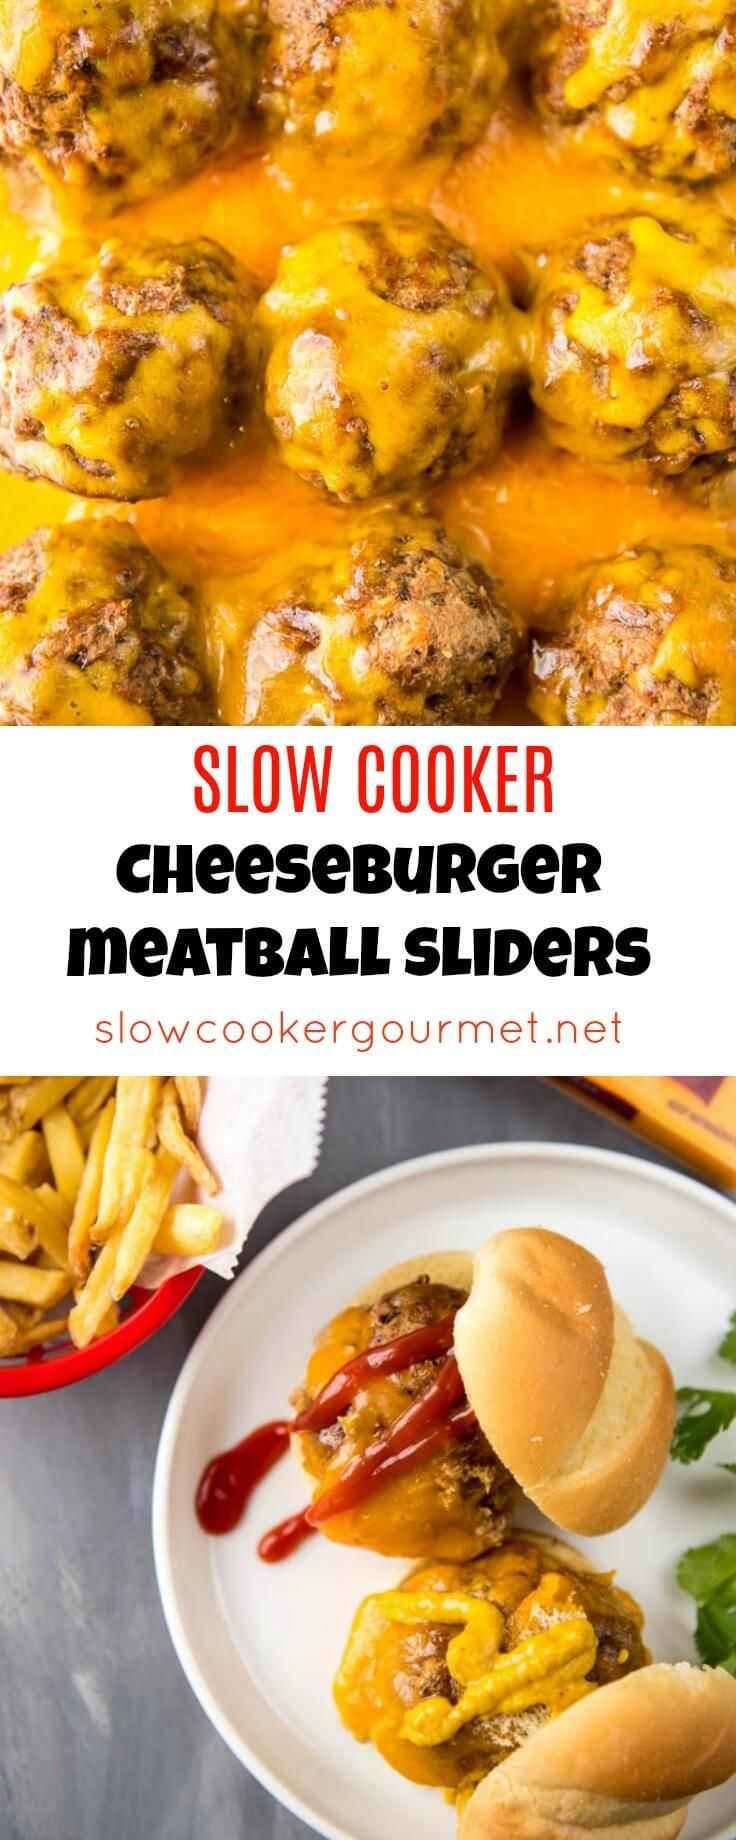 Slow Cooker Cheeseburger Meatball Sliders are the perfect way to get your burger…